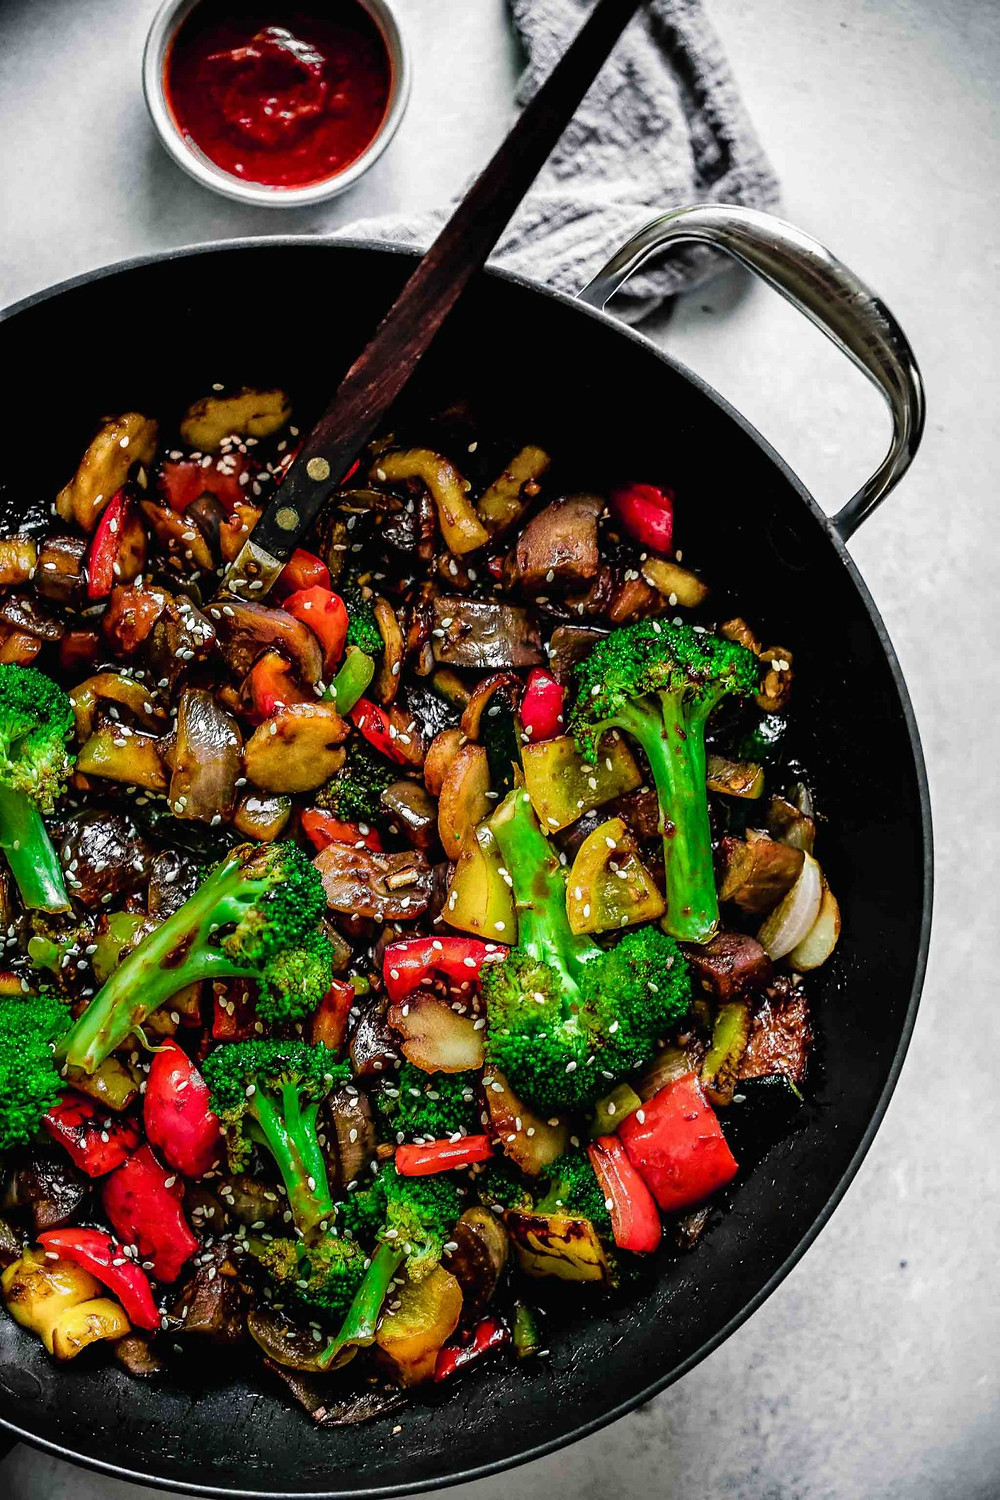 ginger vegetable stir fry makes a quick and gut healthy dinner during busy weeknights